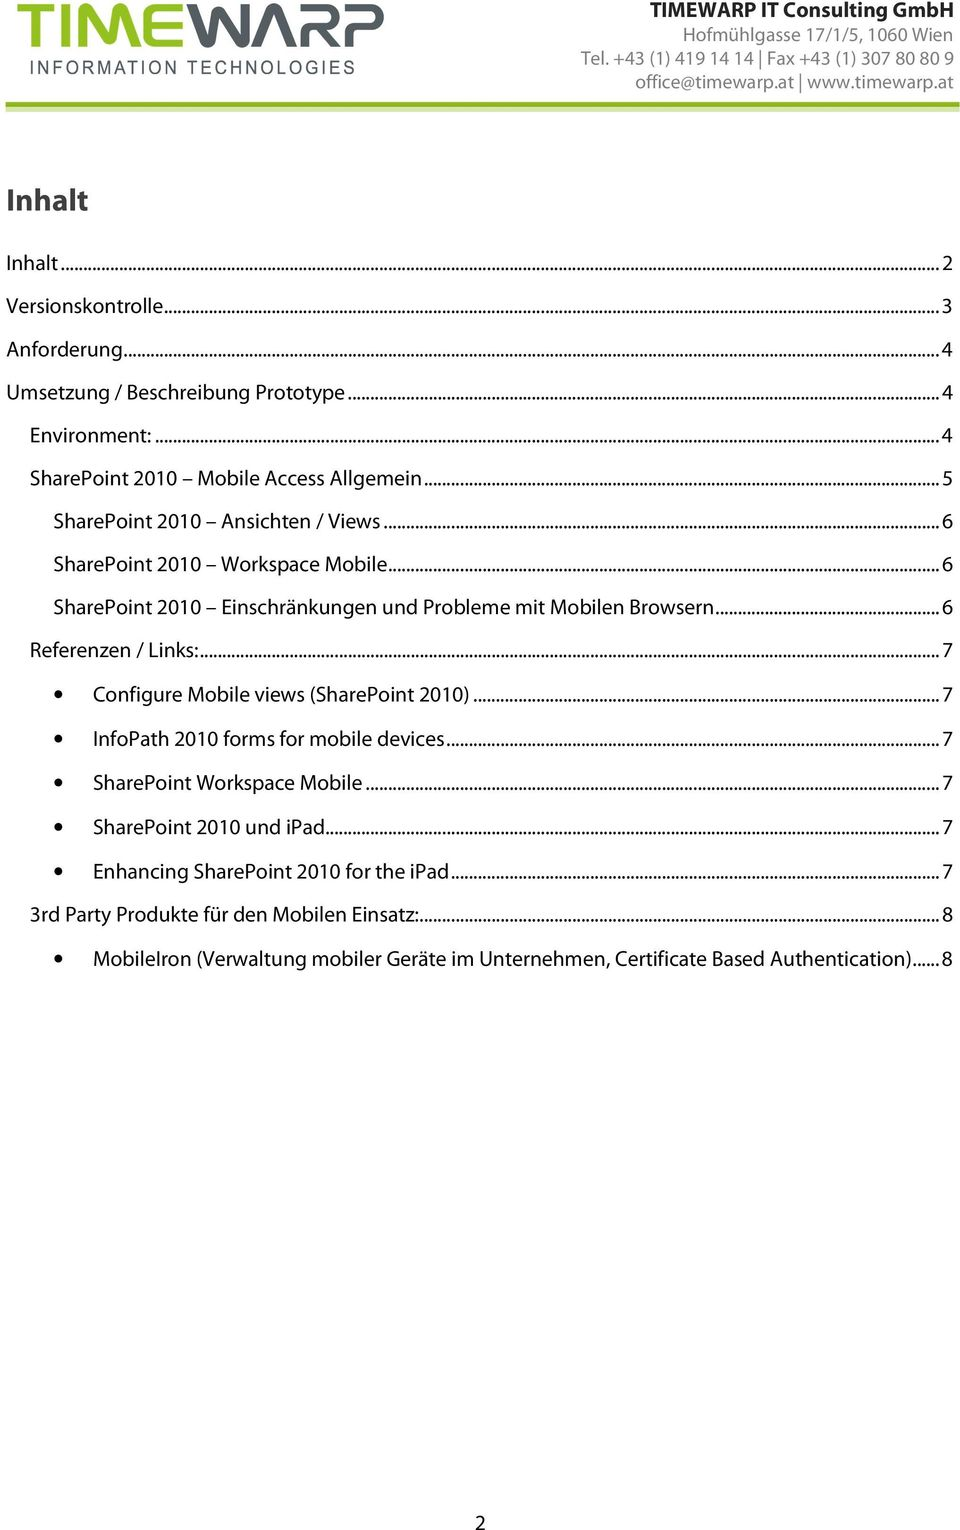 .. 6 Referenzen / Links:... 7 Configure Mobile views (SharePoint 2010)... 7 InfoPath 2010 forms for mobile devices... 7 SharePoint Workspace Mobile.